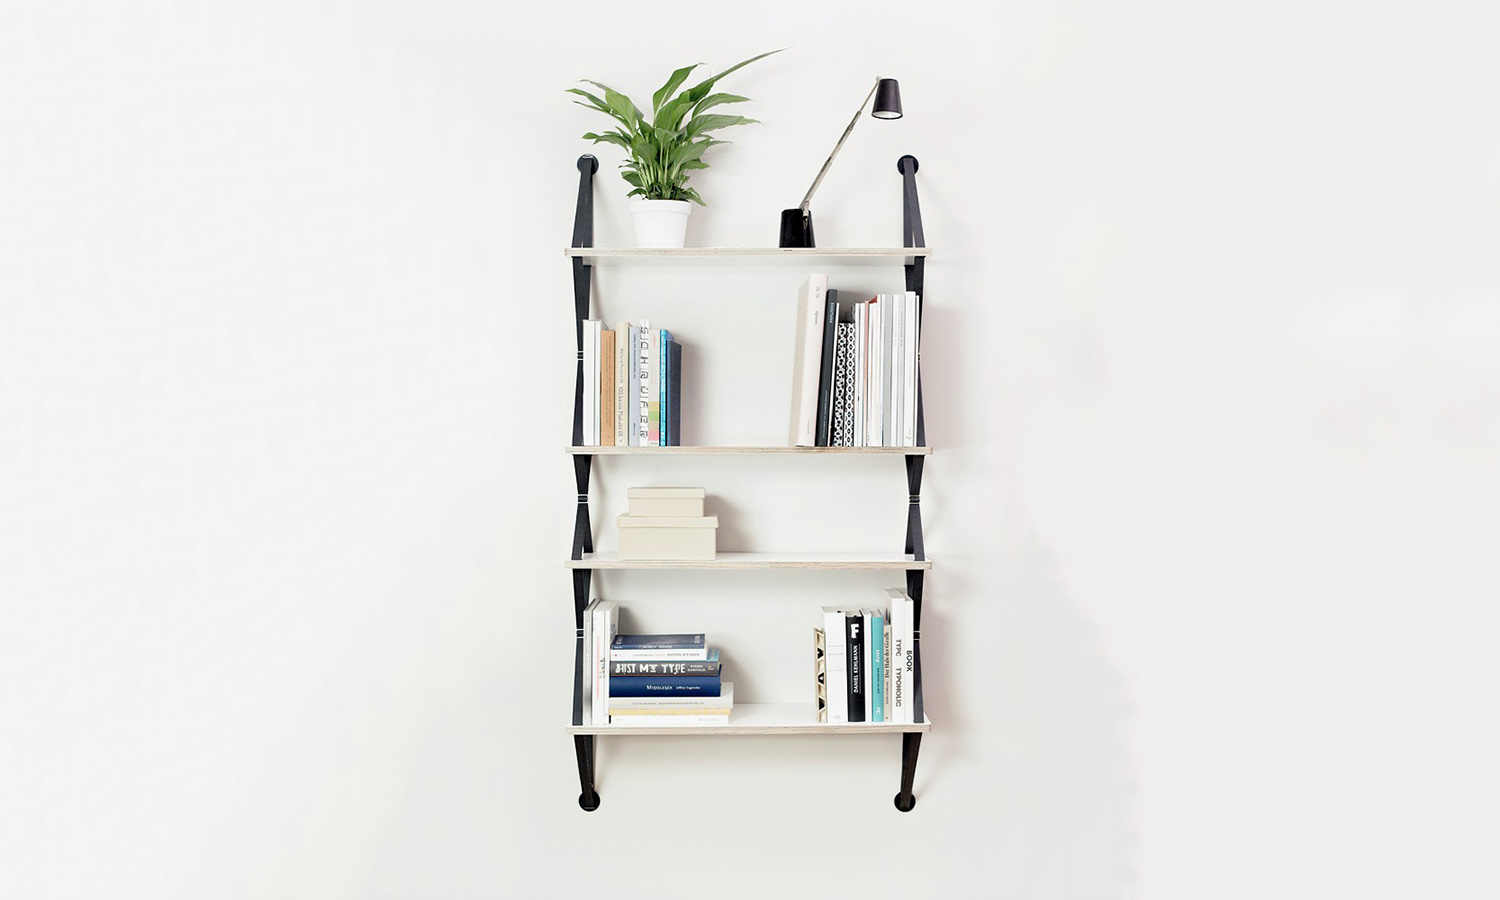 Backpack-Shelves-Fifti-Fifti-FT-0